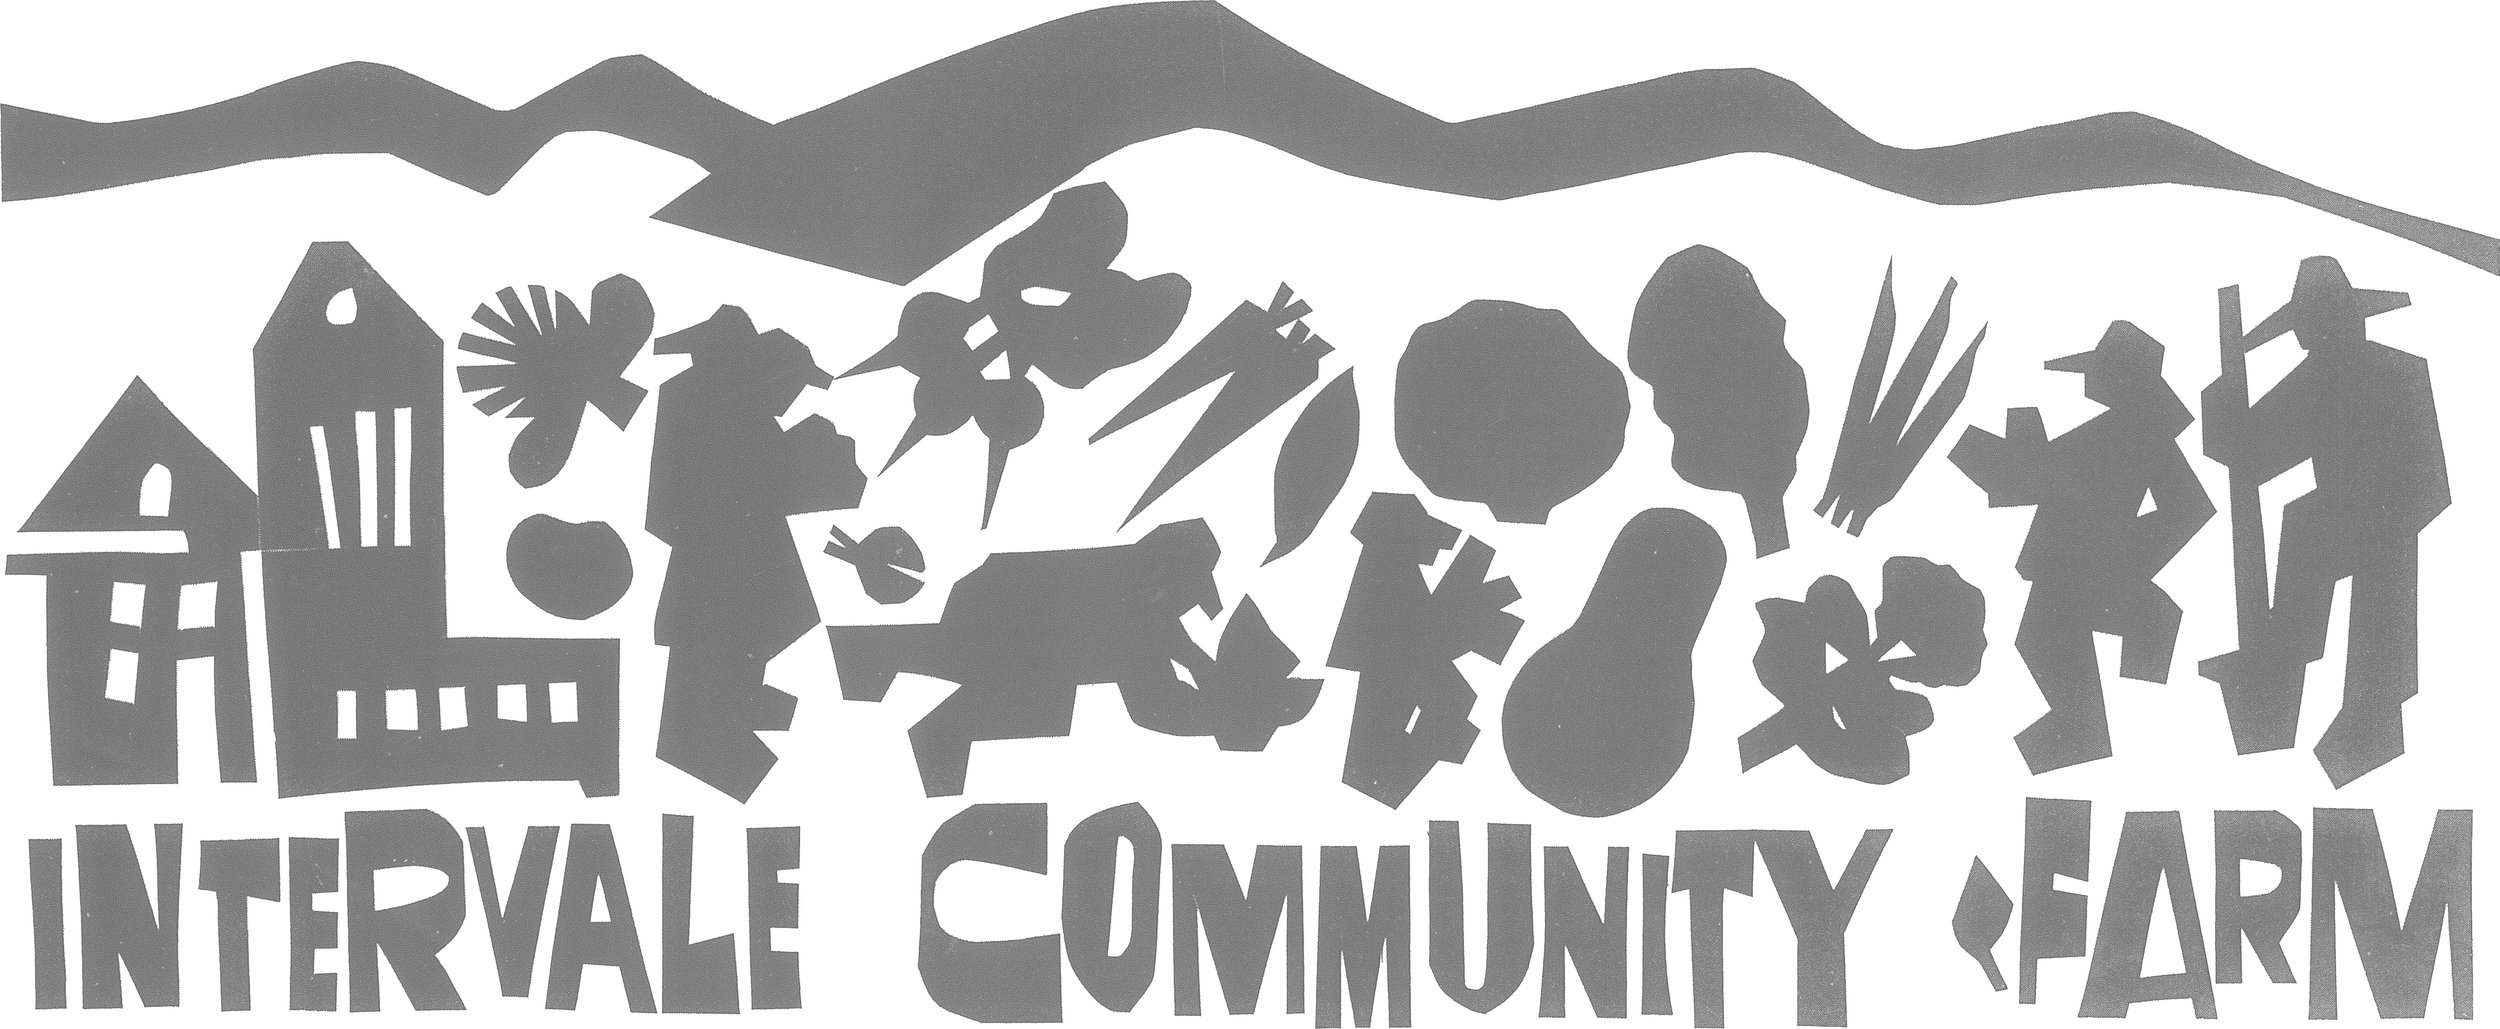 intervale community farm logo